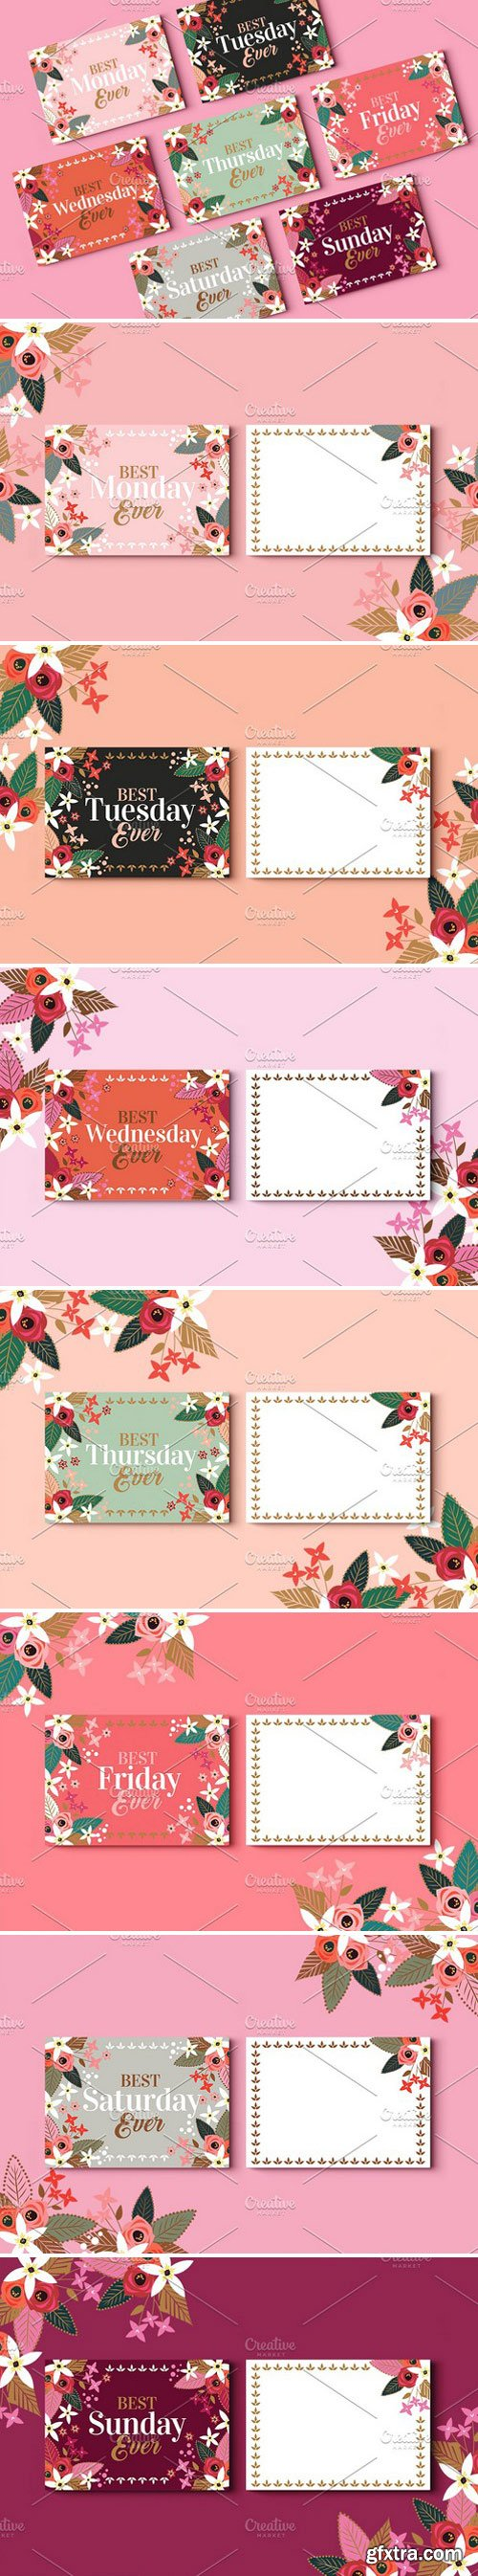 CM - Best Week Ever Greeting Cards 2359933